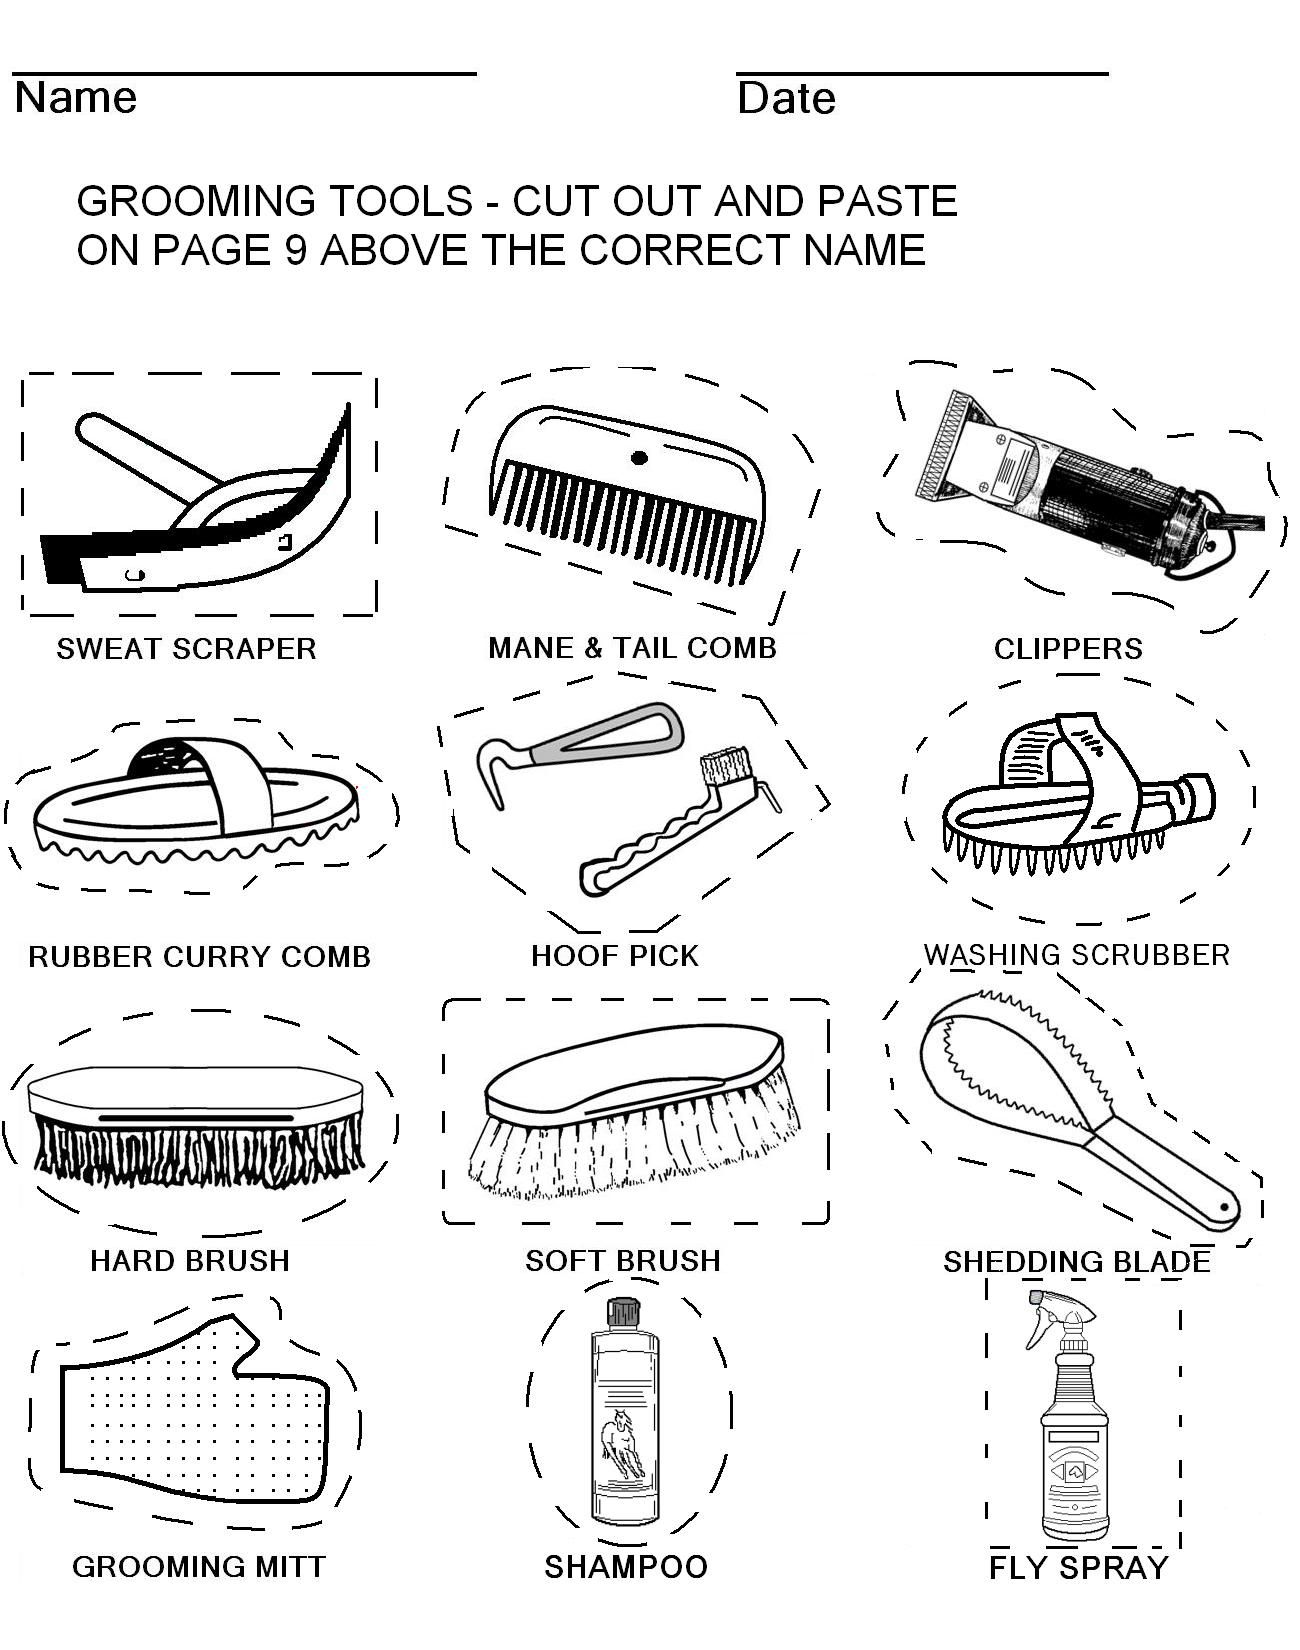 small resolution of grooming tools cut amp paste page 8 the rest of the pages